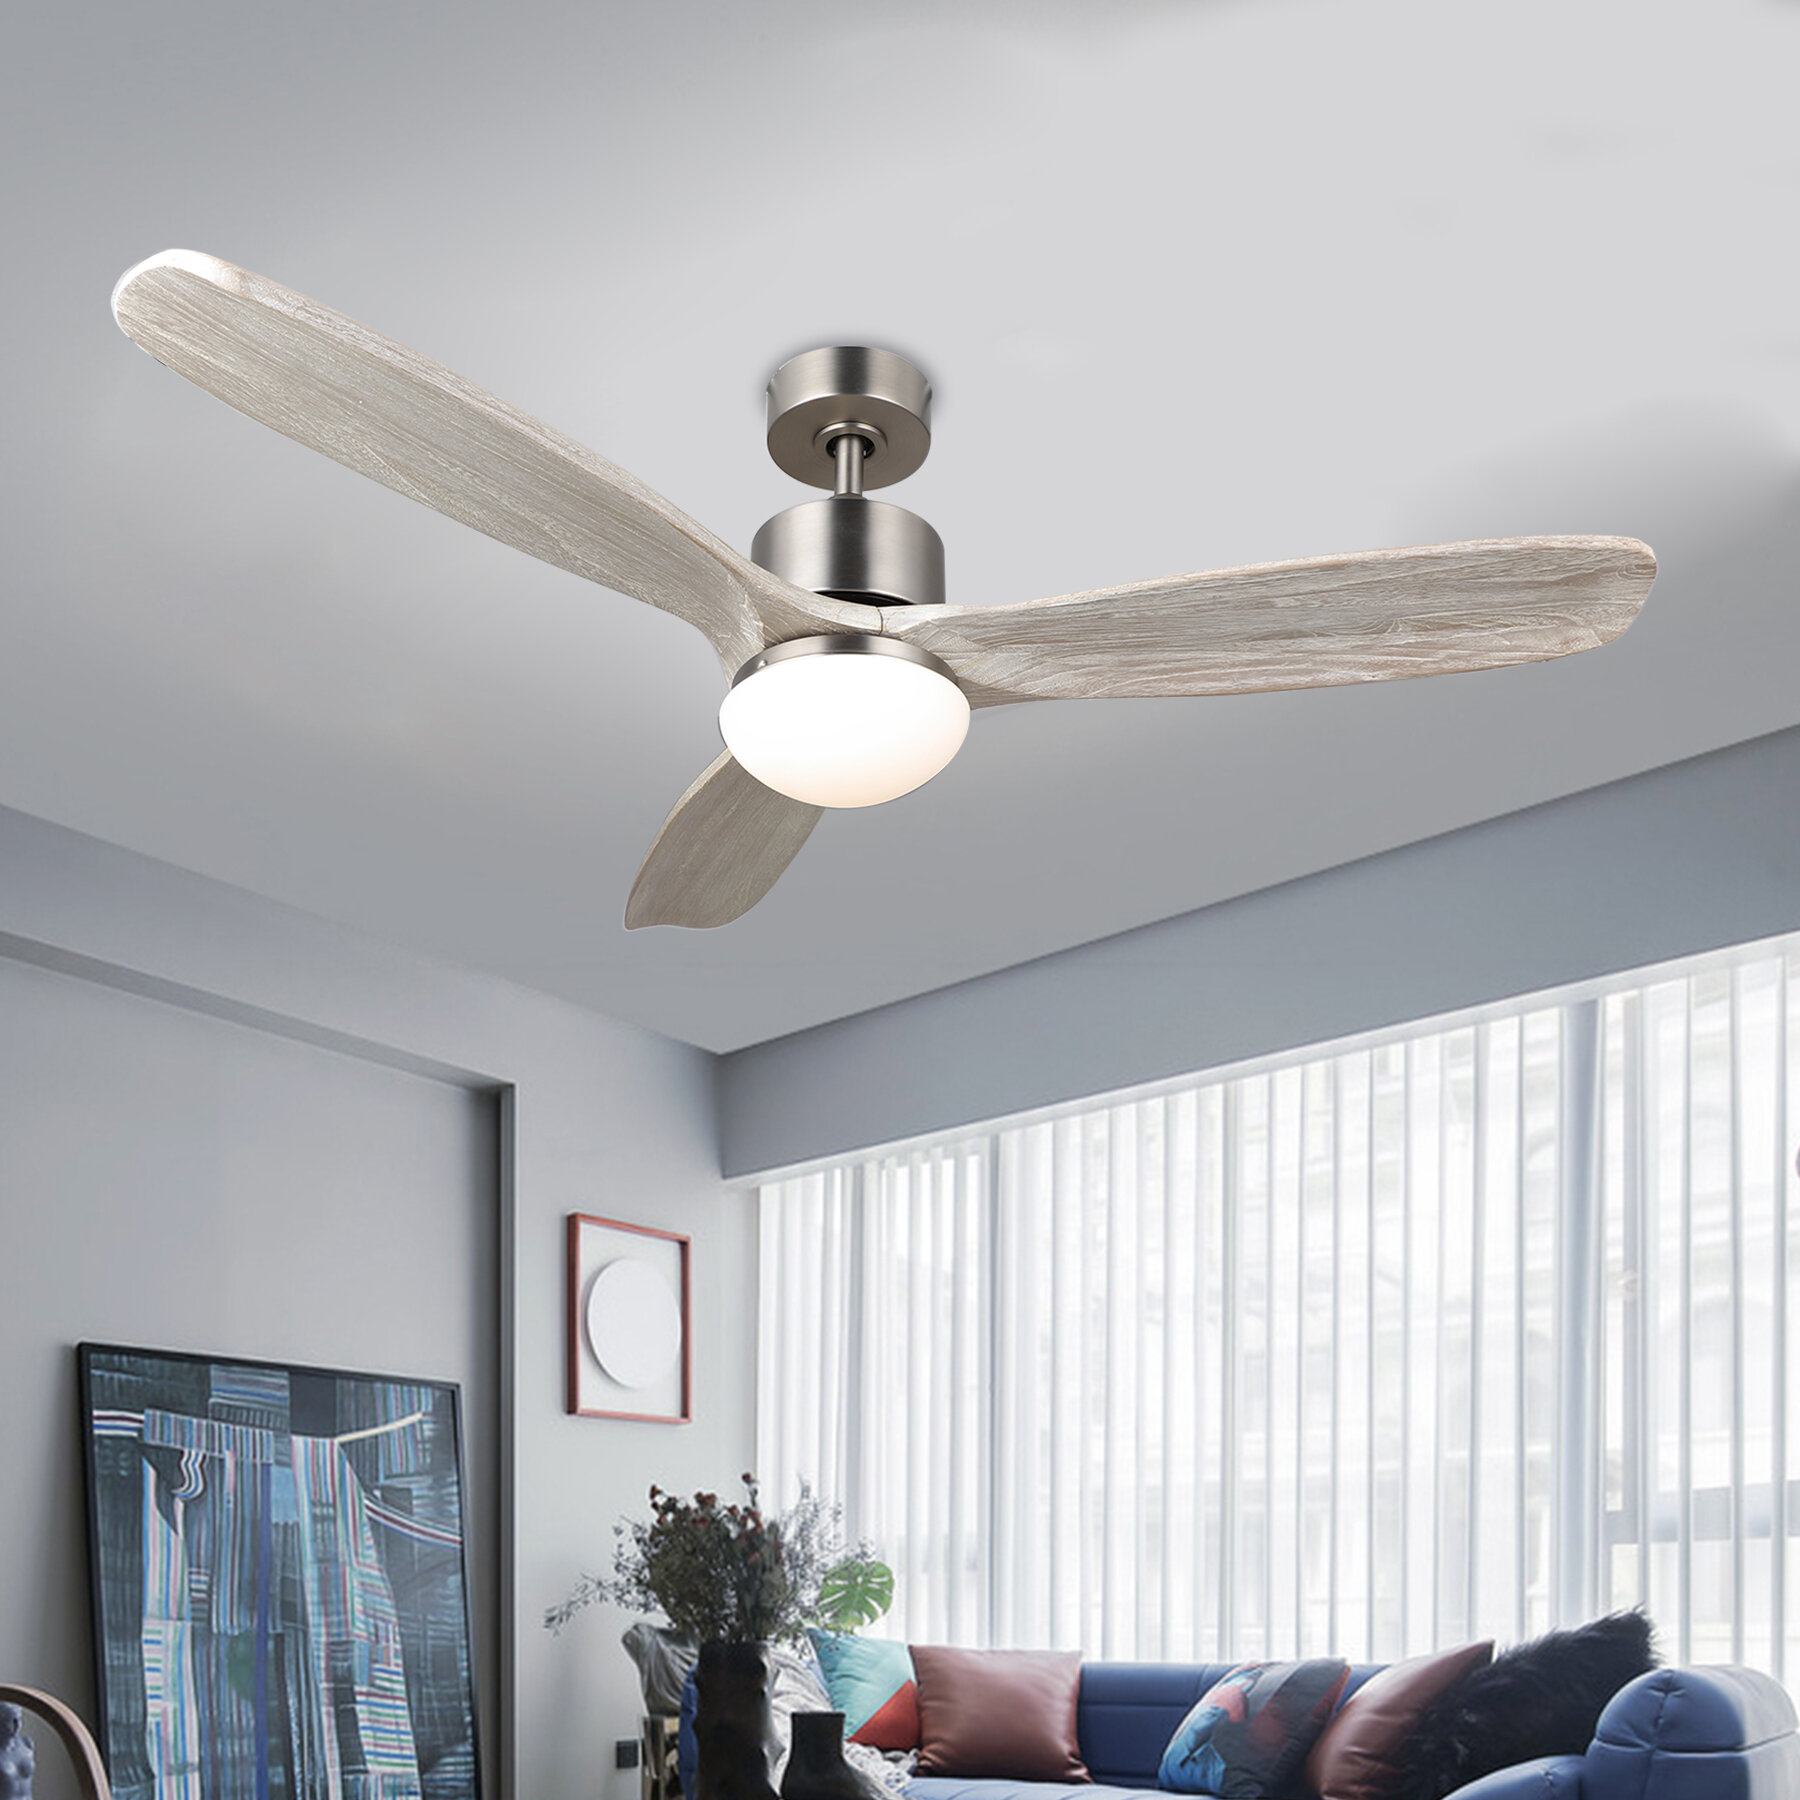 Union Rustic 52 Mayna 3 Blade Led Standard Ceiling Fan With Remote Control And Light Kit Included Reviews Wayfair